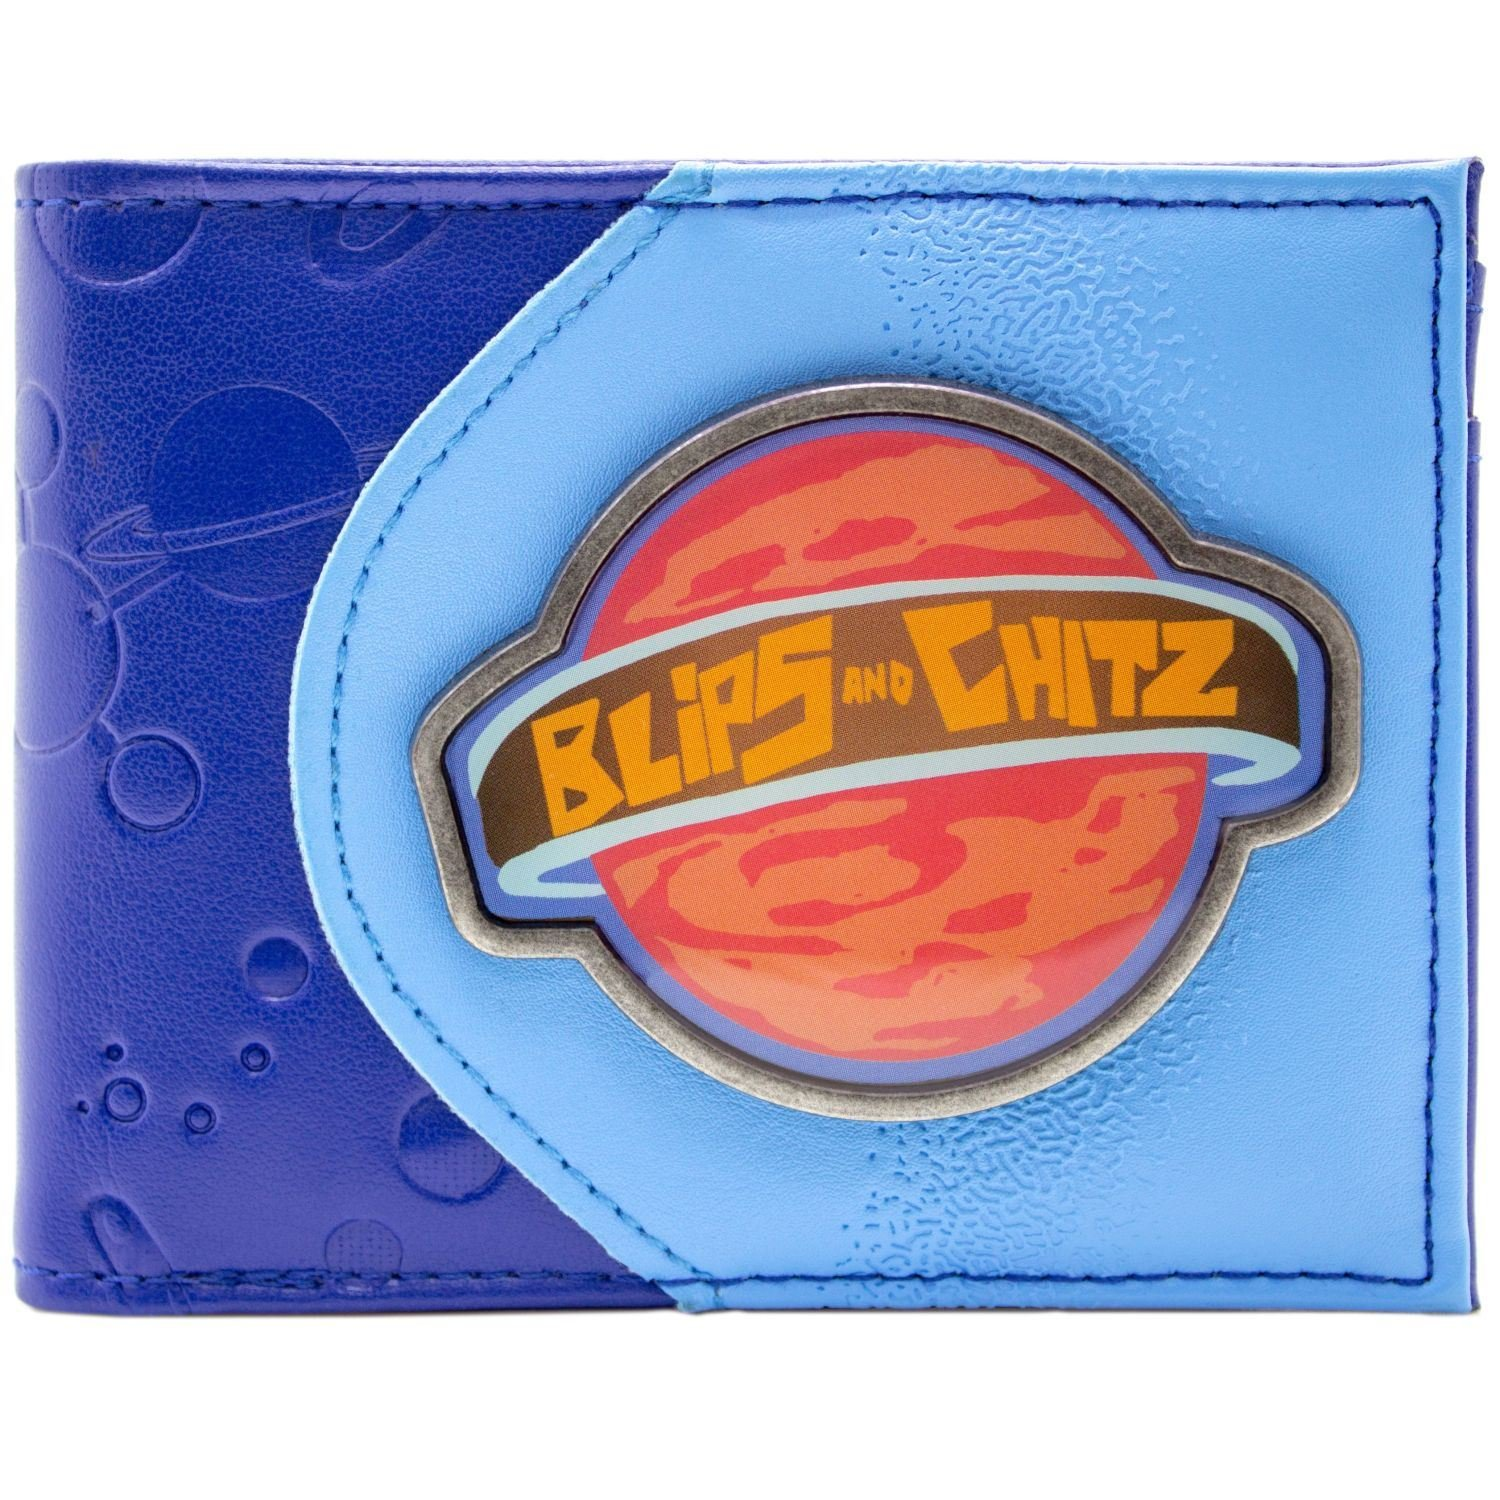 Cartera de Rick and Morty Blips and Chitz Mortynight Run Azul 30323